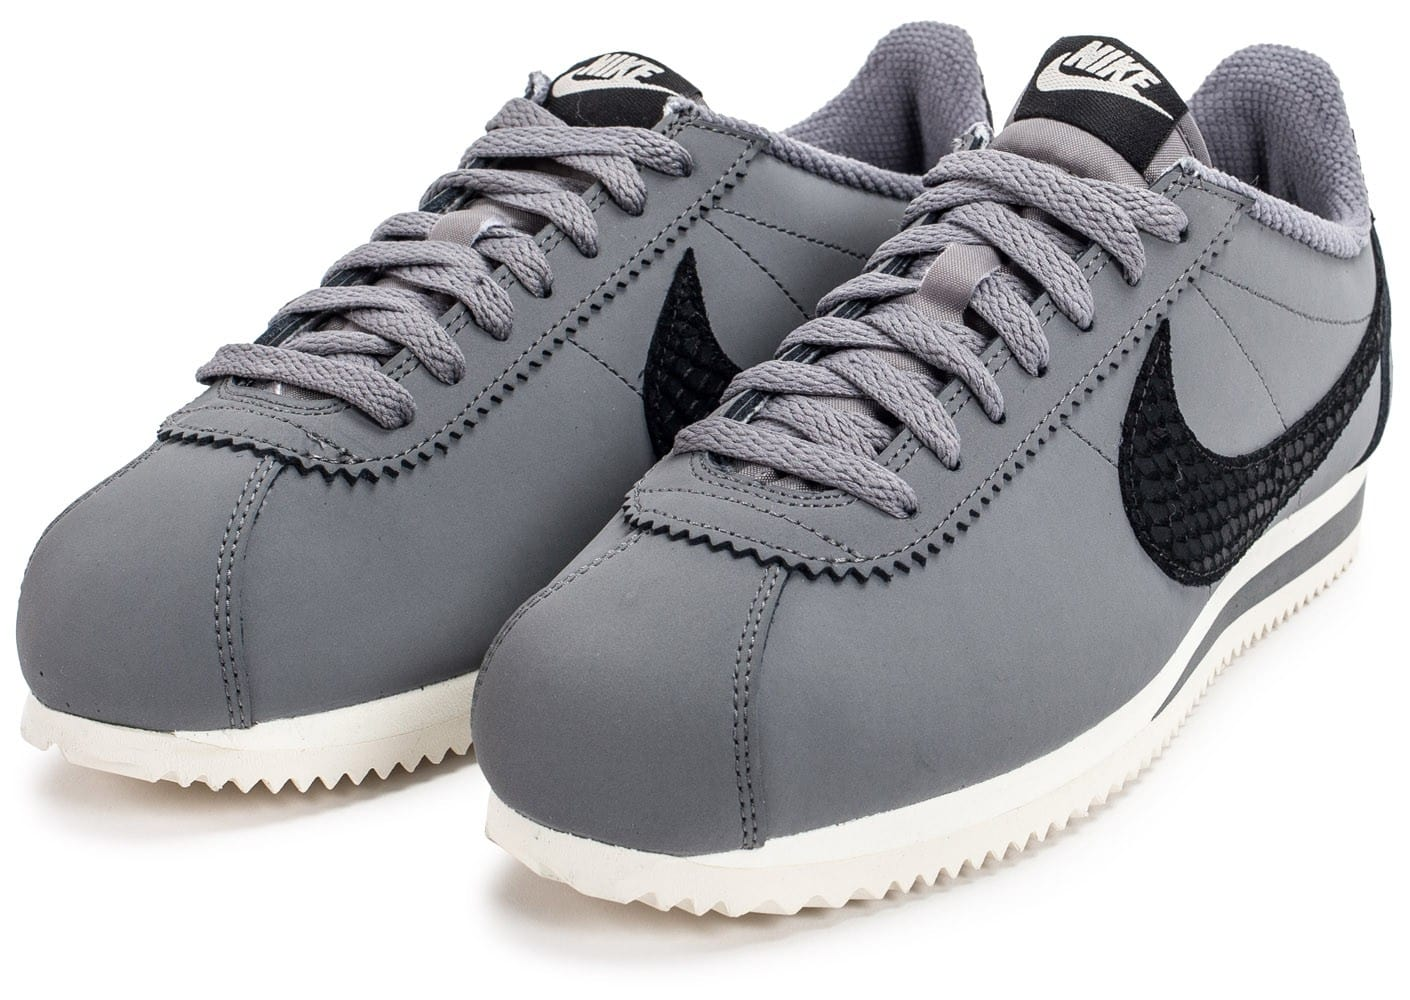 Chaussures Grise Nike Cortez Se Noire Baskets Leather Et Homme Y67yvbfg